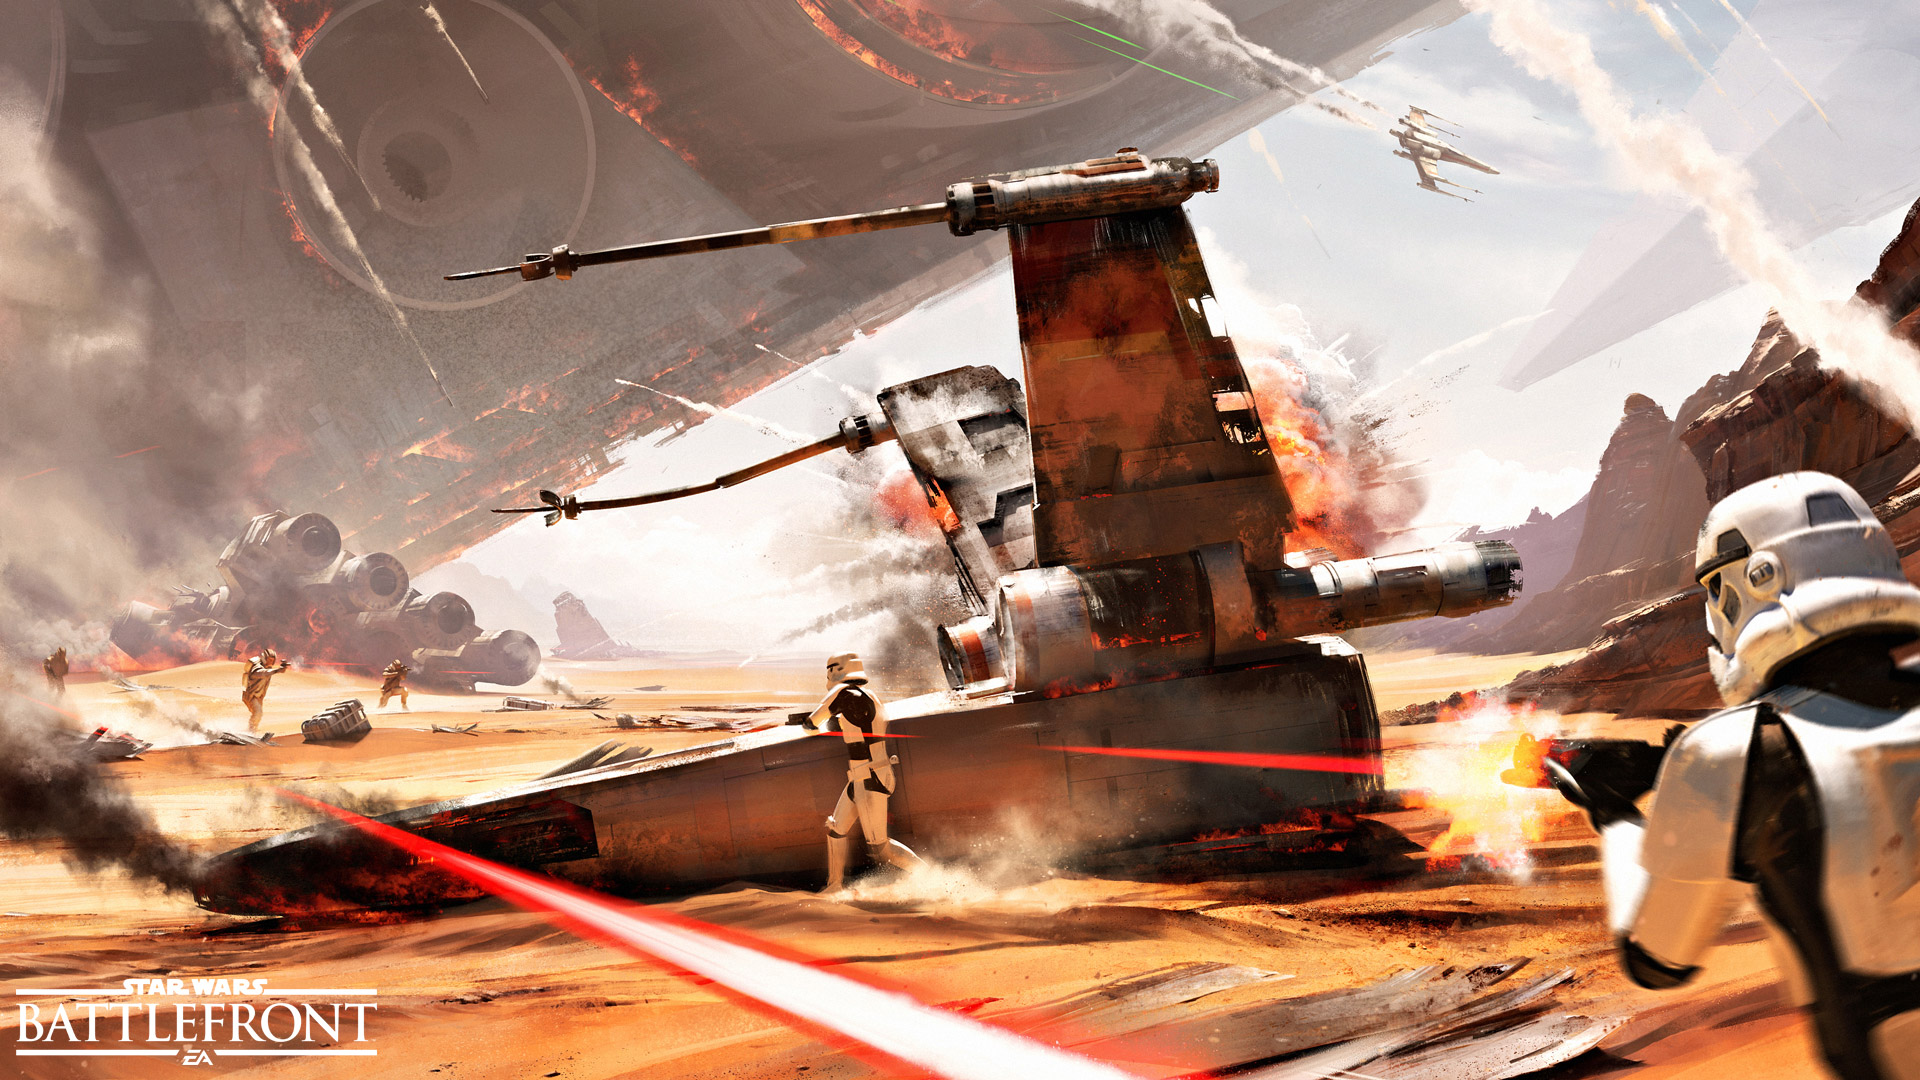 Star Wars Battlefront Lost Its Campaign Mode Because Of The Force Awakens